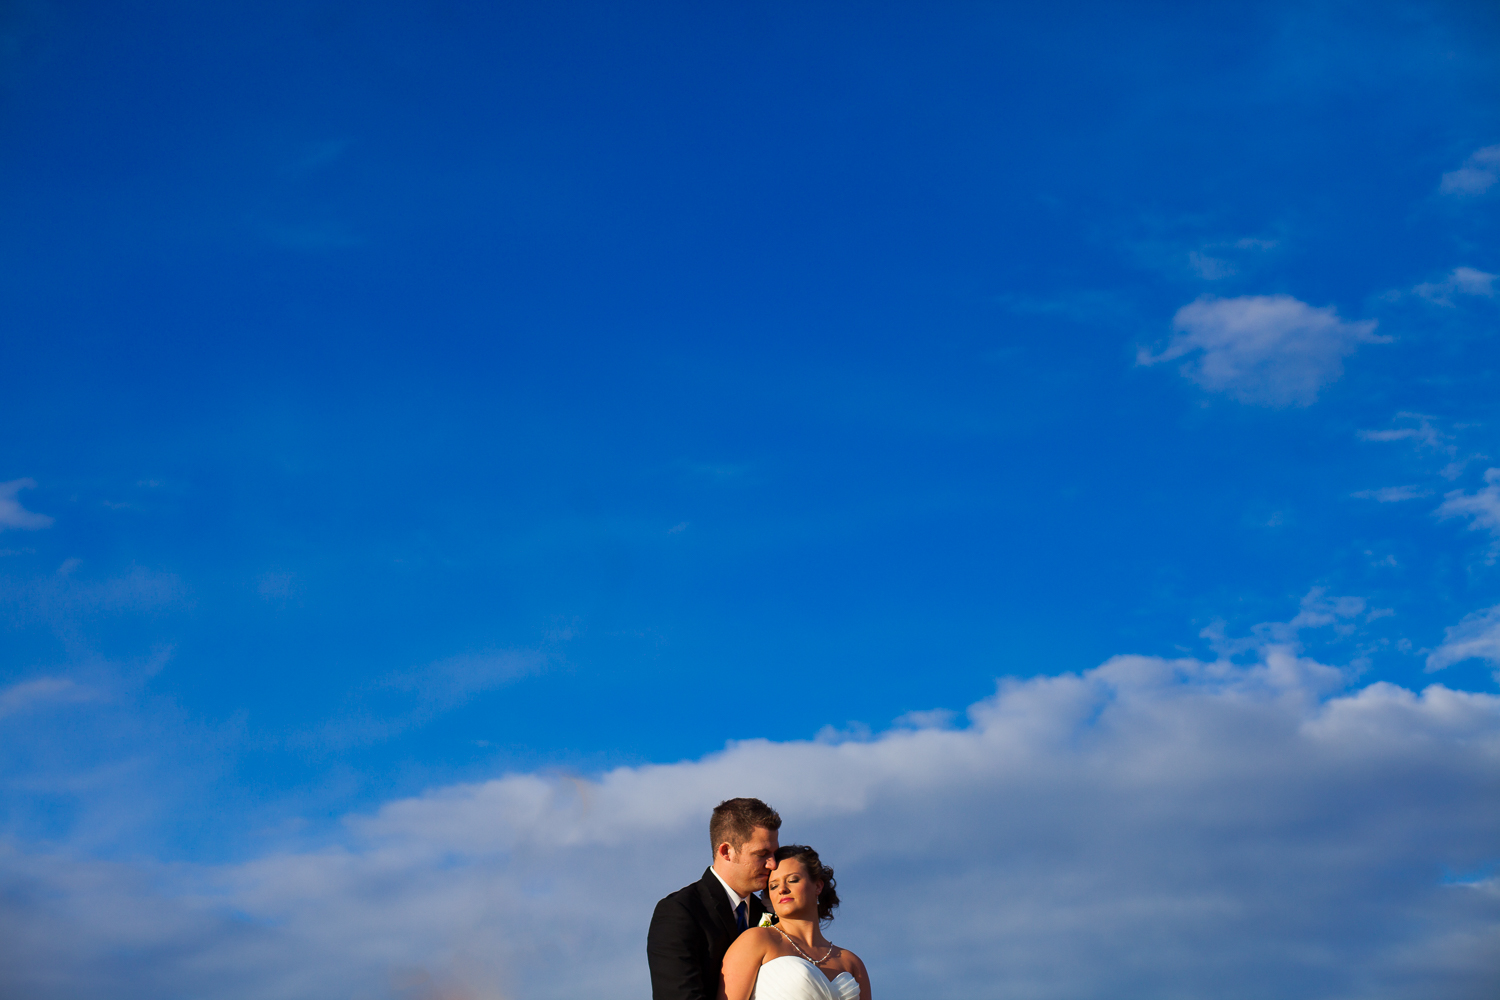 Colorado-Wedding-Photography-36.jpg